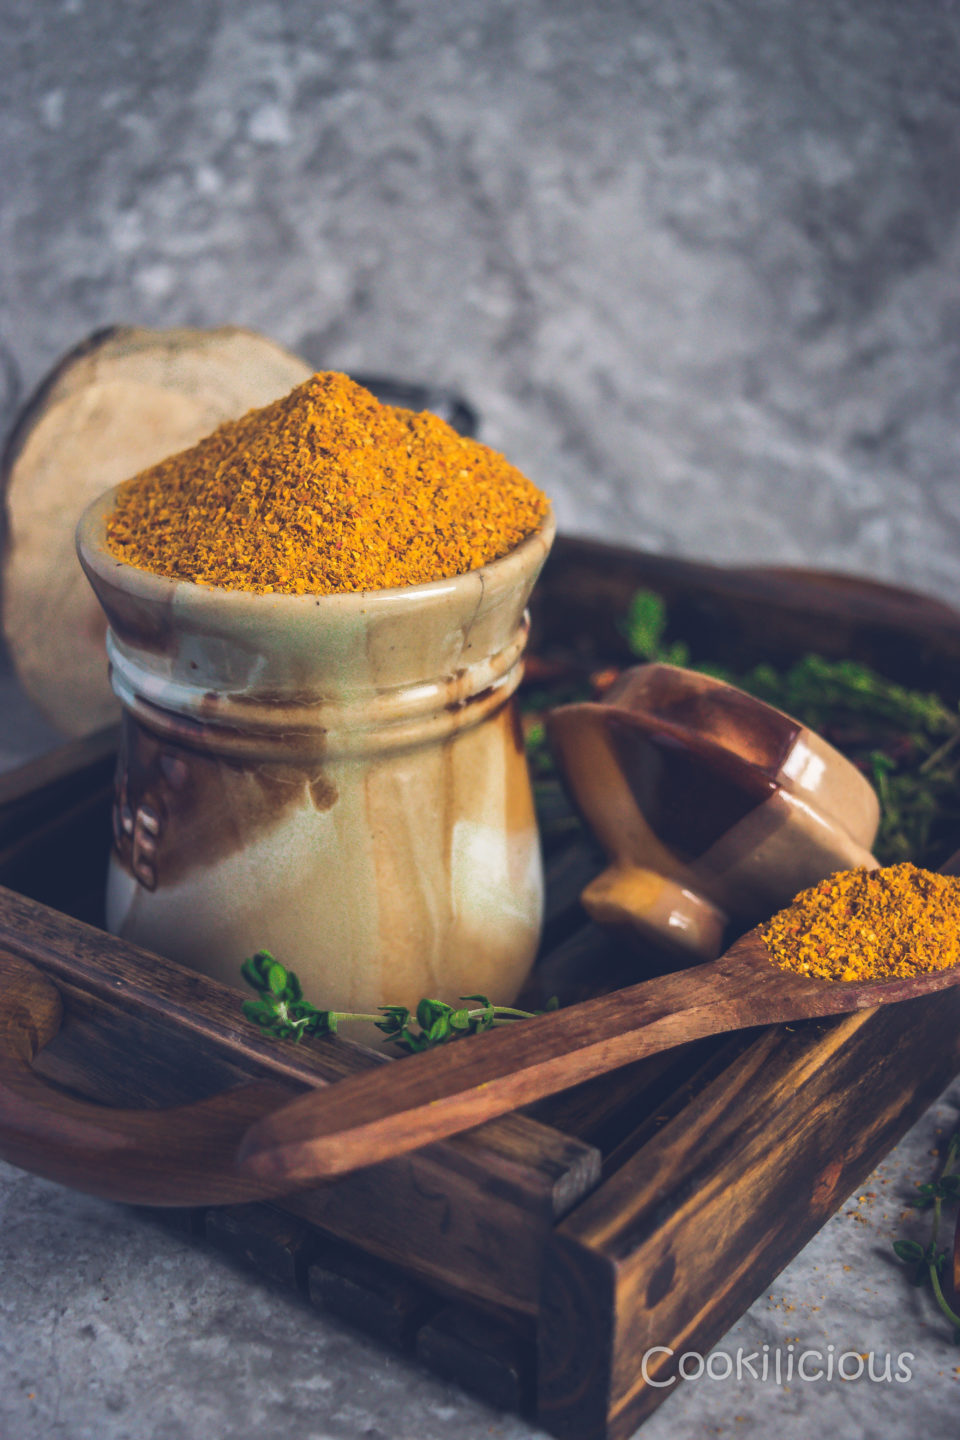 side shot of a jar and wooden spoon with sambhar powder in a wooden tray